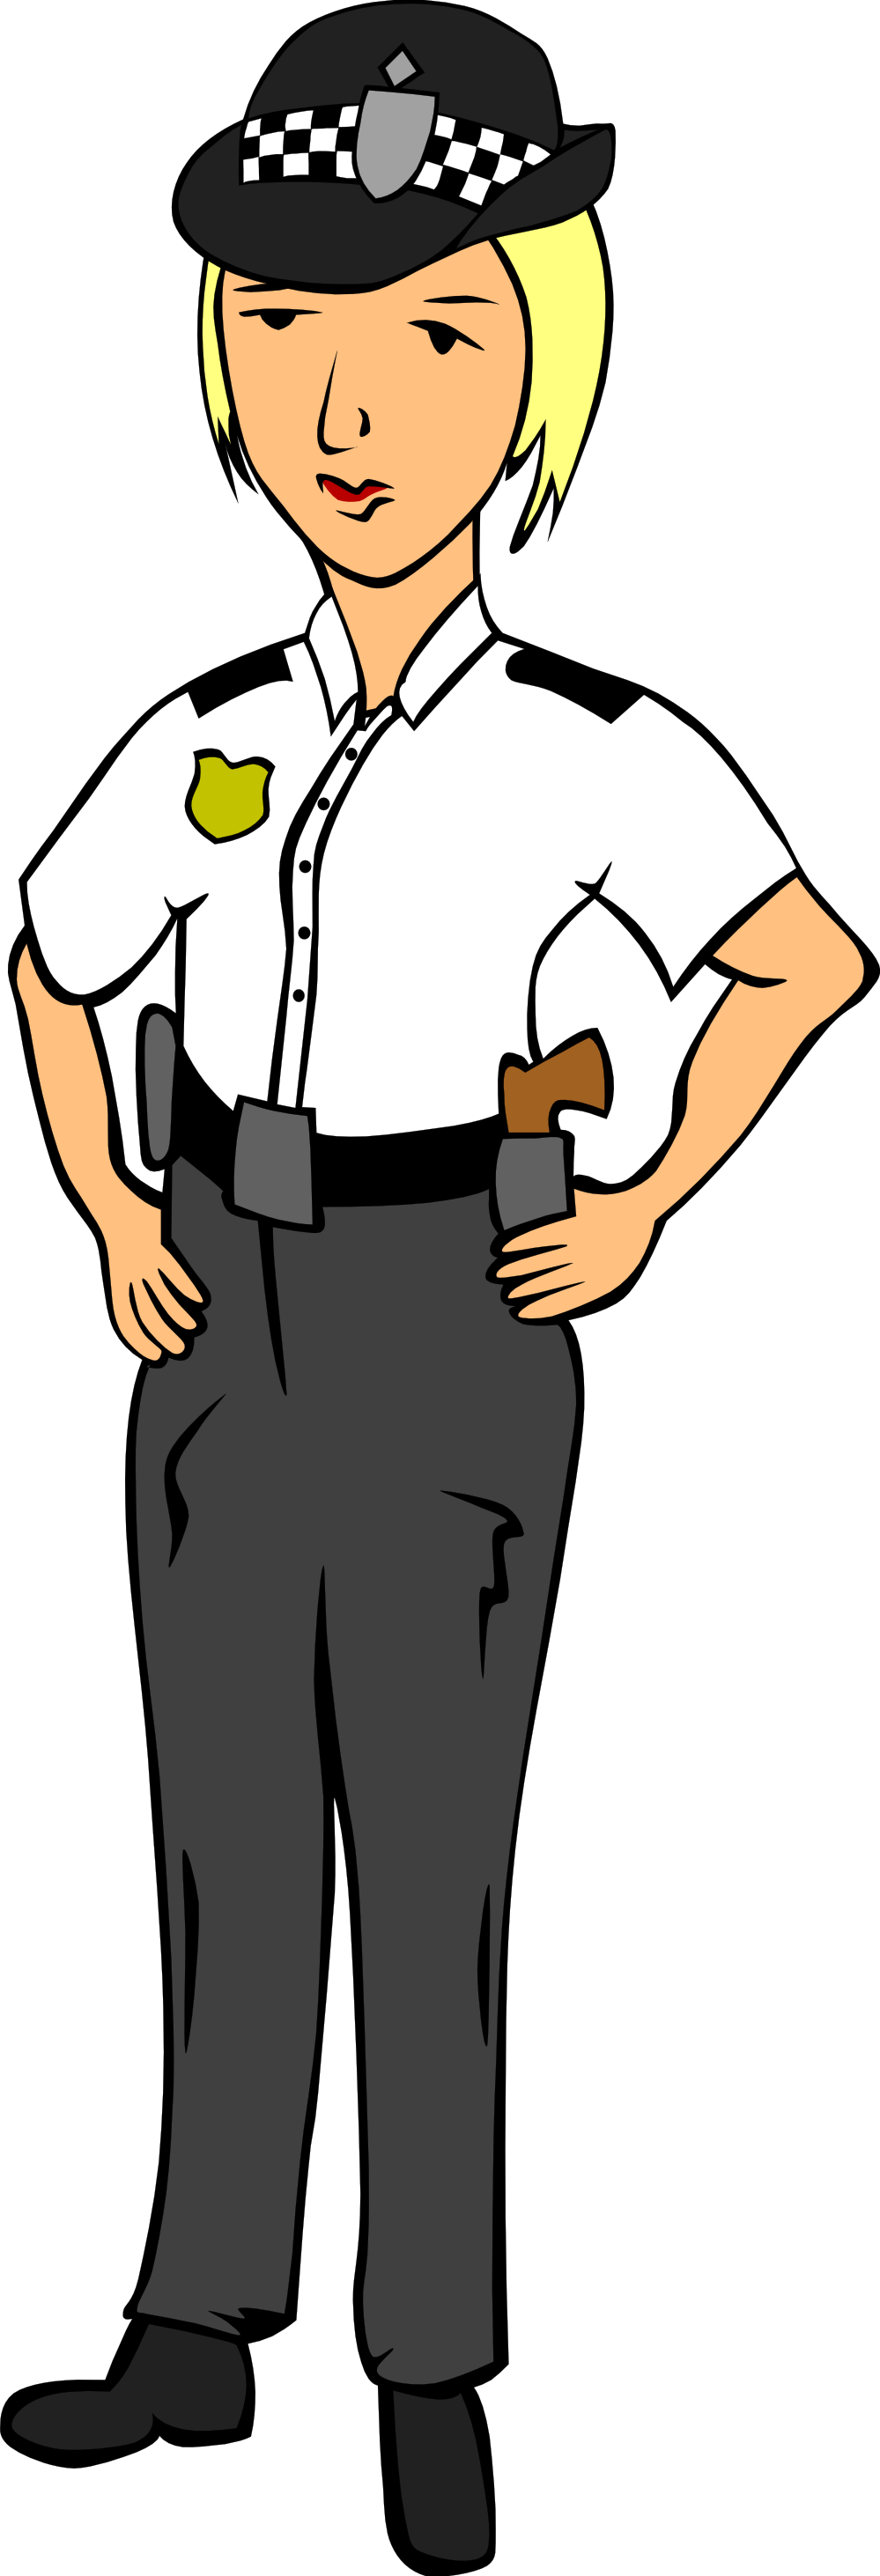 Fight clipart polite. Free police officer download